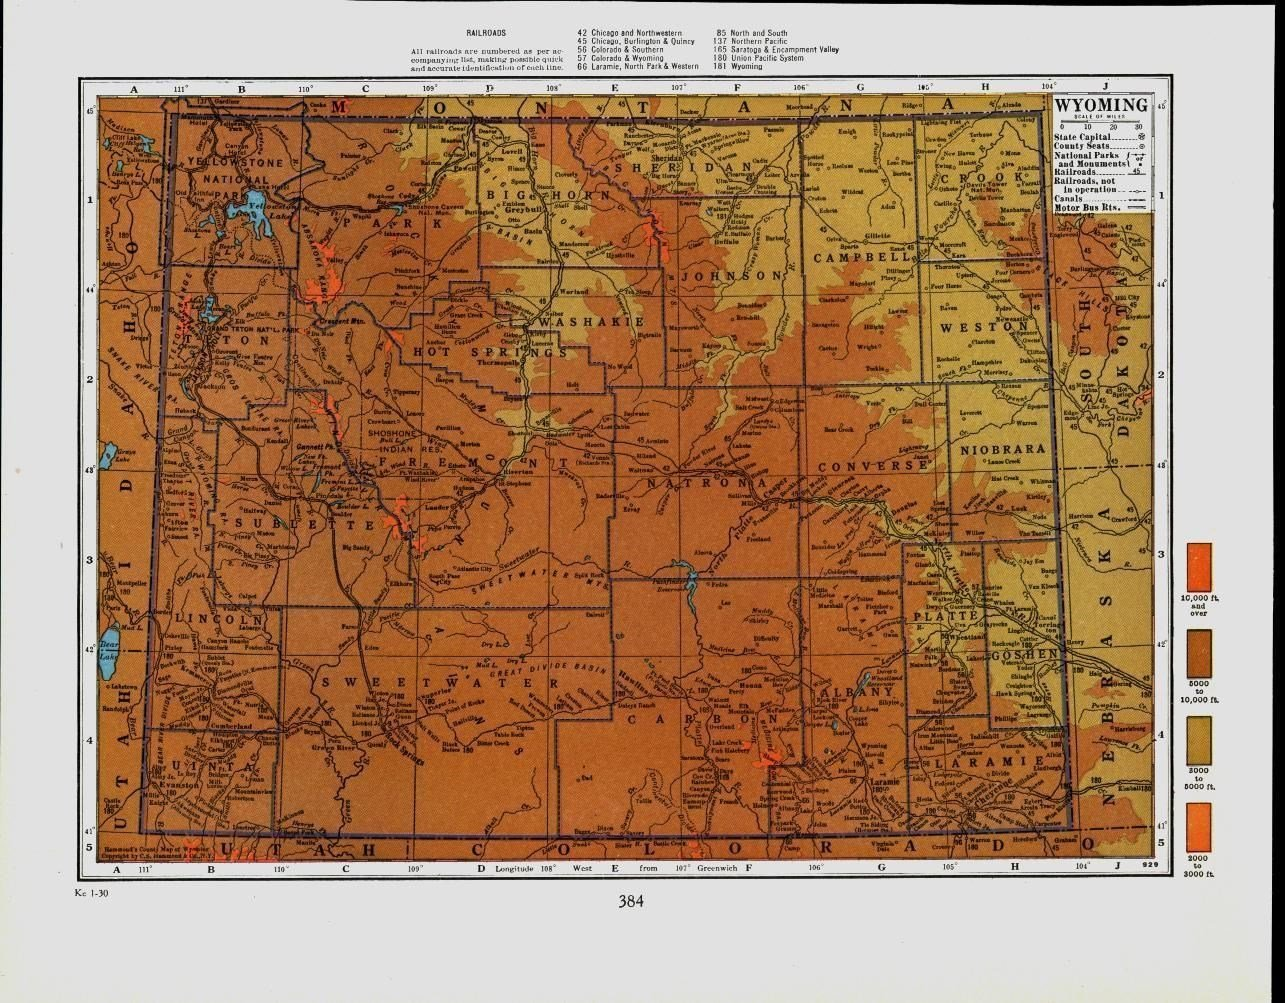 Lincoln County Wyoming Map.Amazon Com Wyoming Carbon Lincoln Crook Sheridan County C 1920